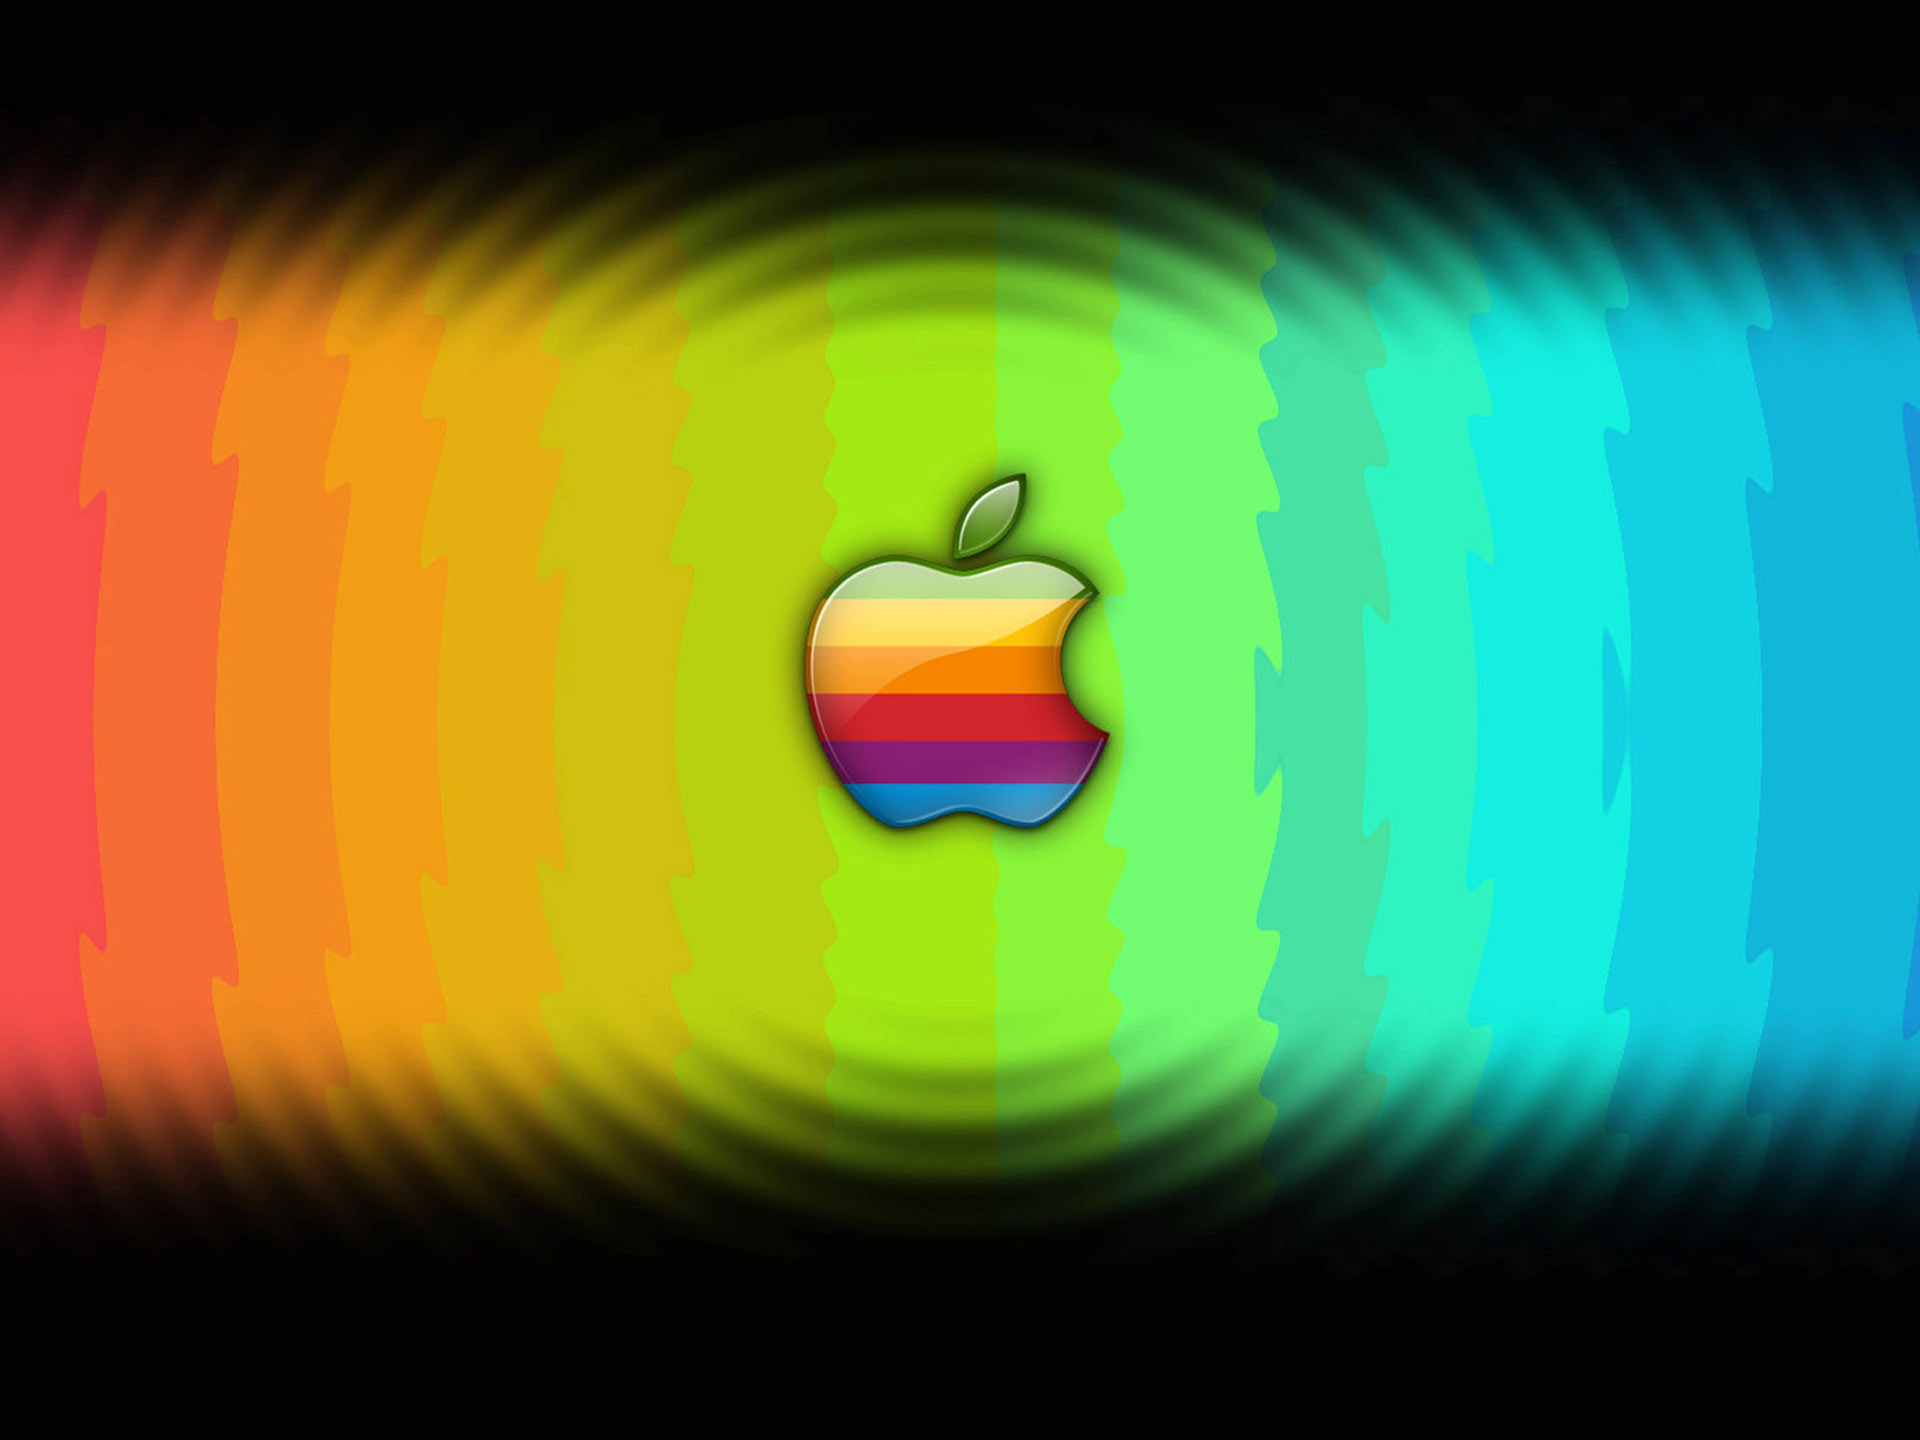 Cool Apple Wallpapers For Mac